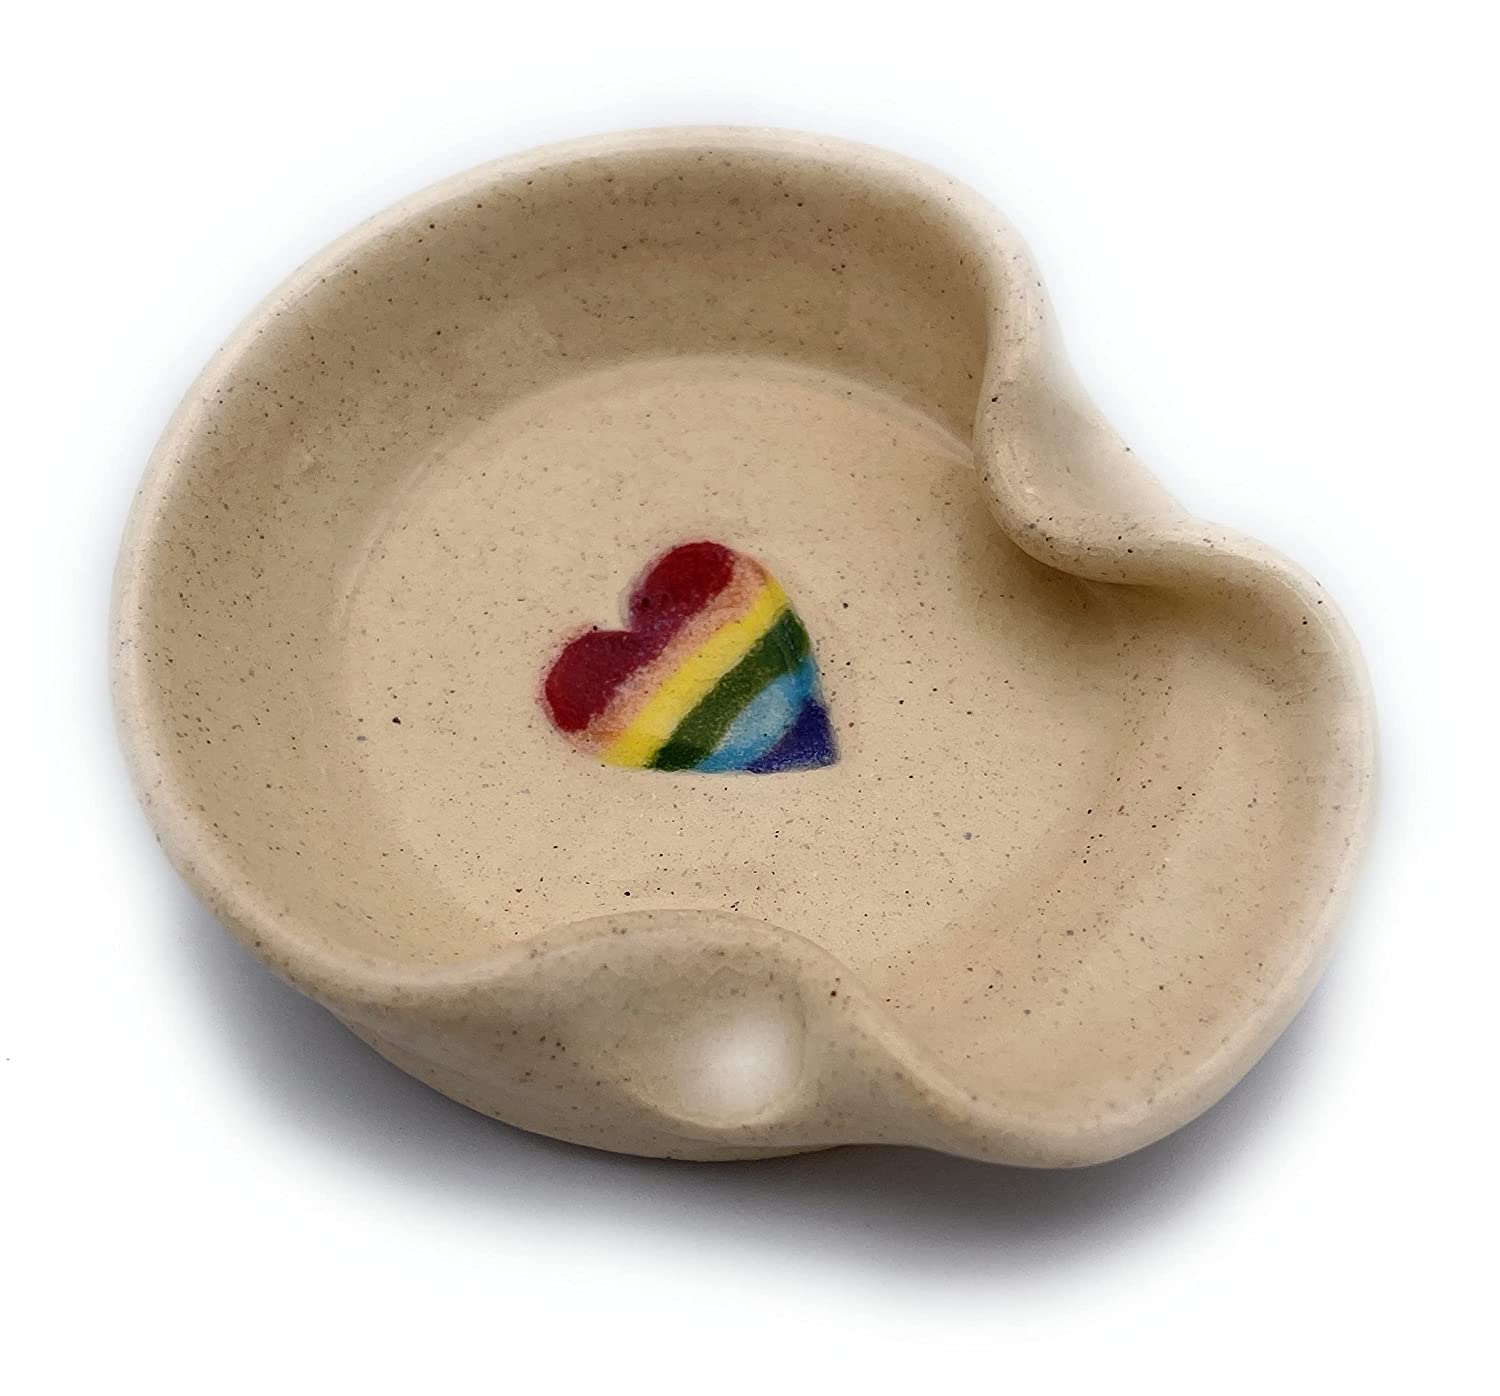 Teaspoon Rest MINI Ceramic Challenge the lowest price of Japan ☆ Spoon Cre with in Heart Nashville-Davidson Mall Rainbow